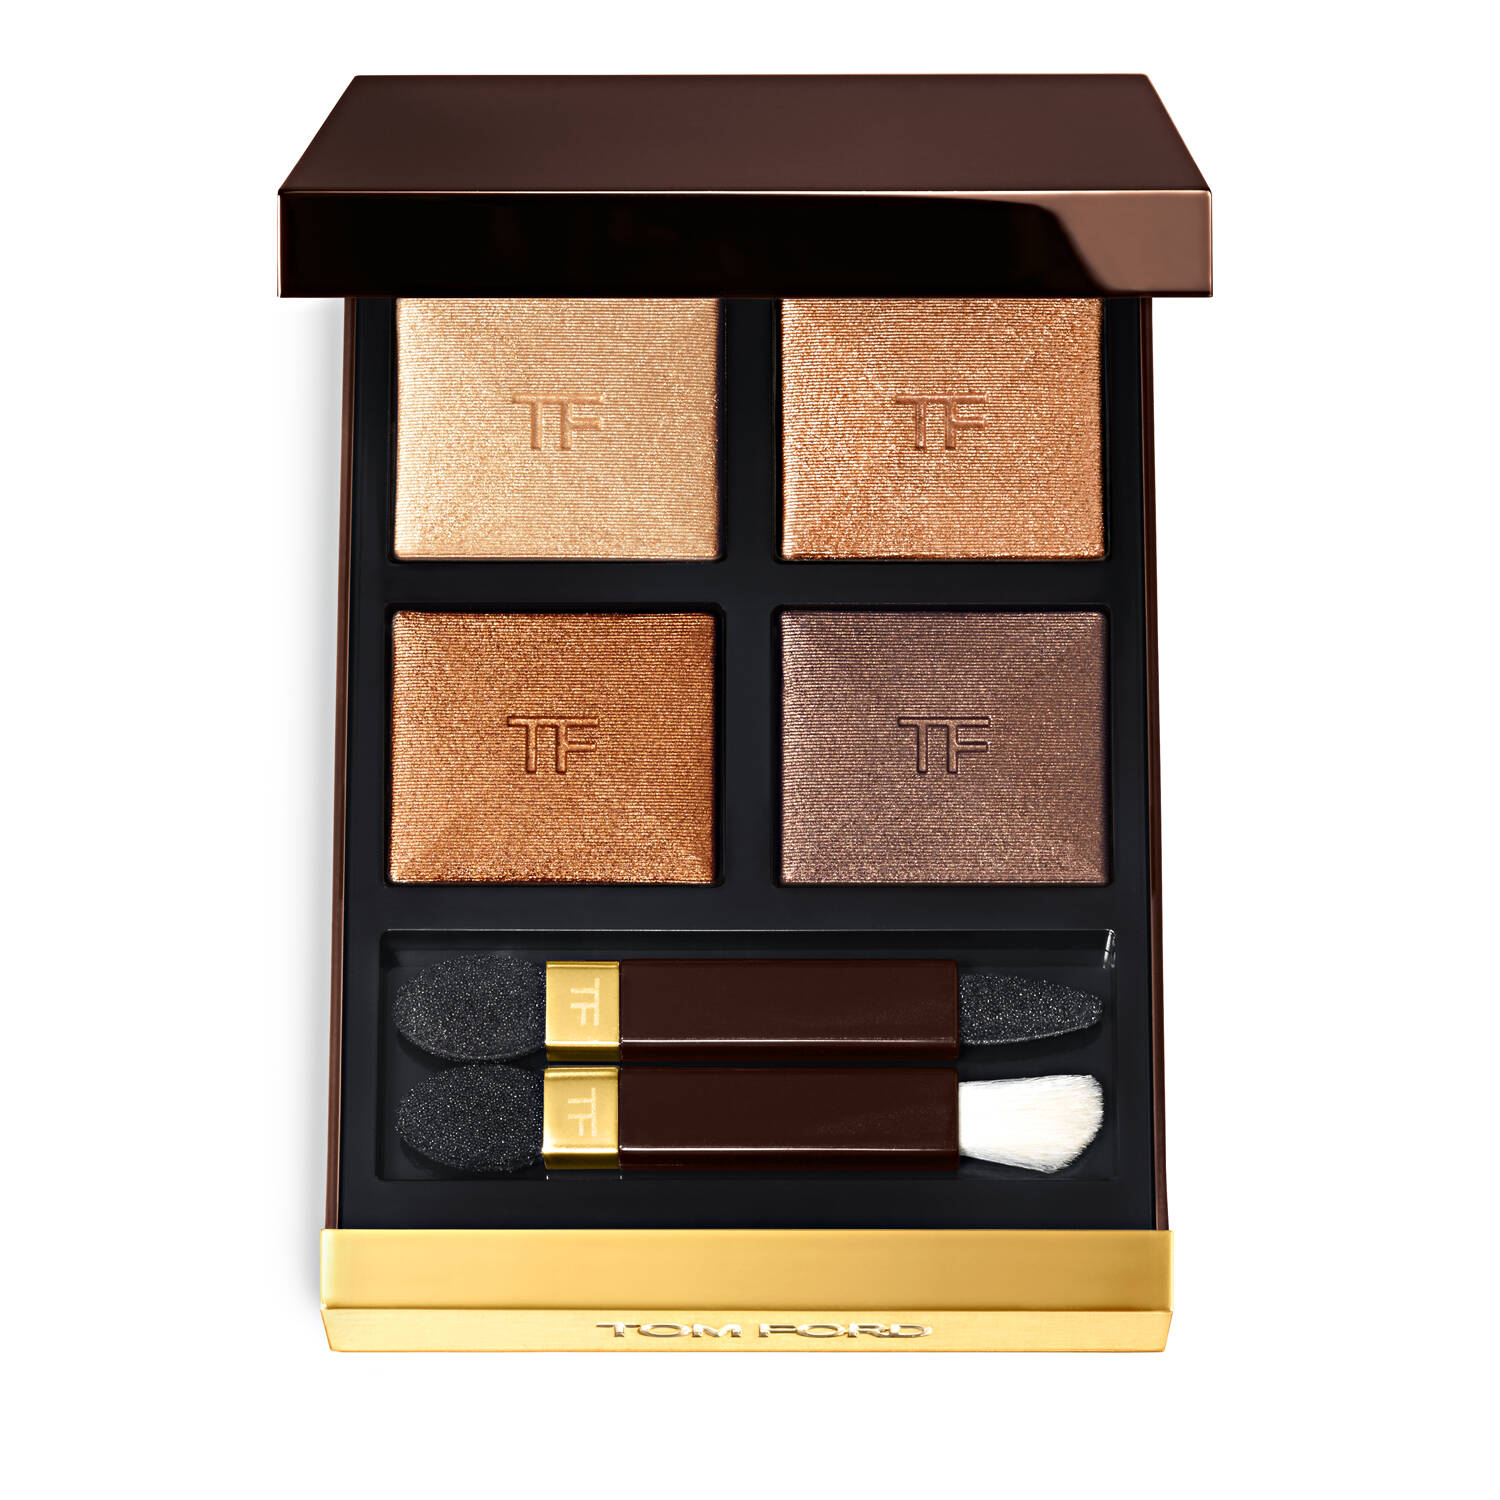 TOM FORD Eye Color Quad (Suspicion | 6 g) Make Up, Augen, Lidschatten, Cosmetics, Eyes von TOM FORD